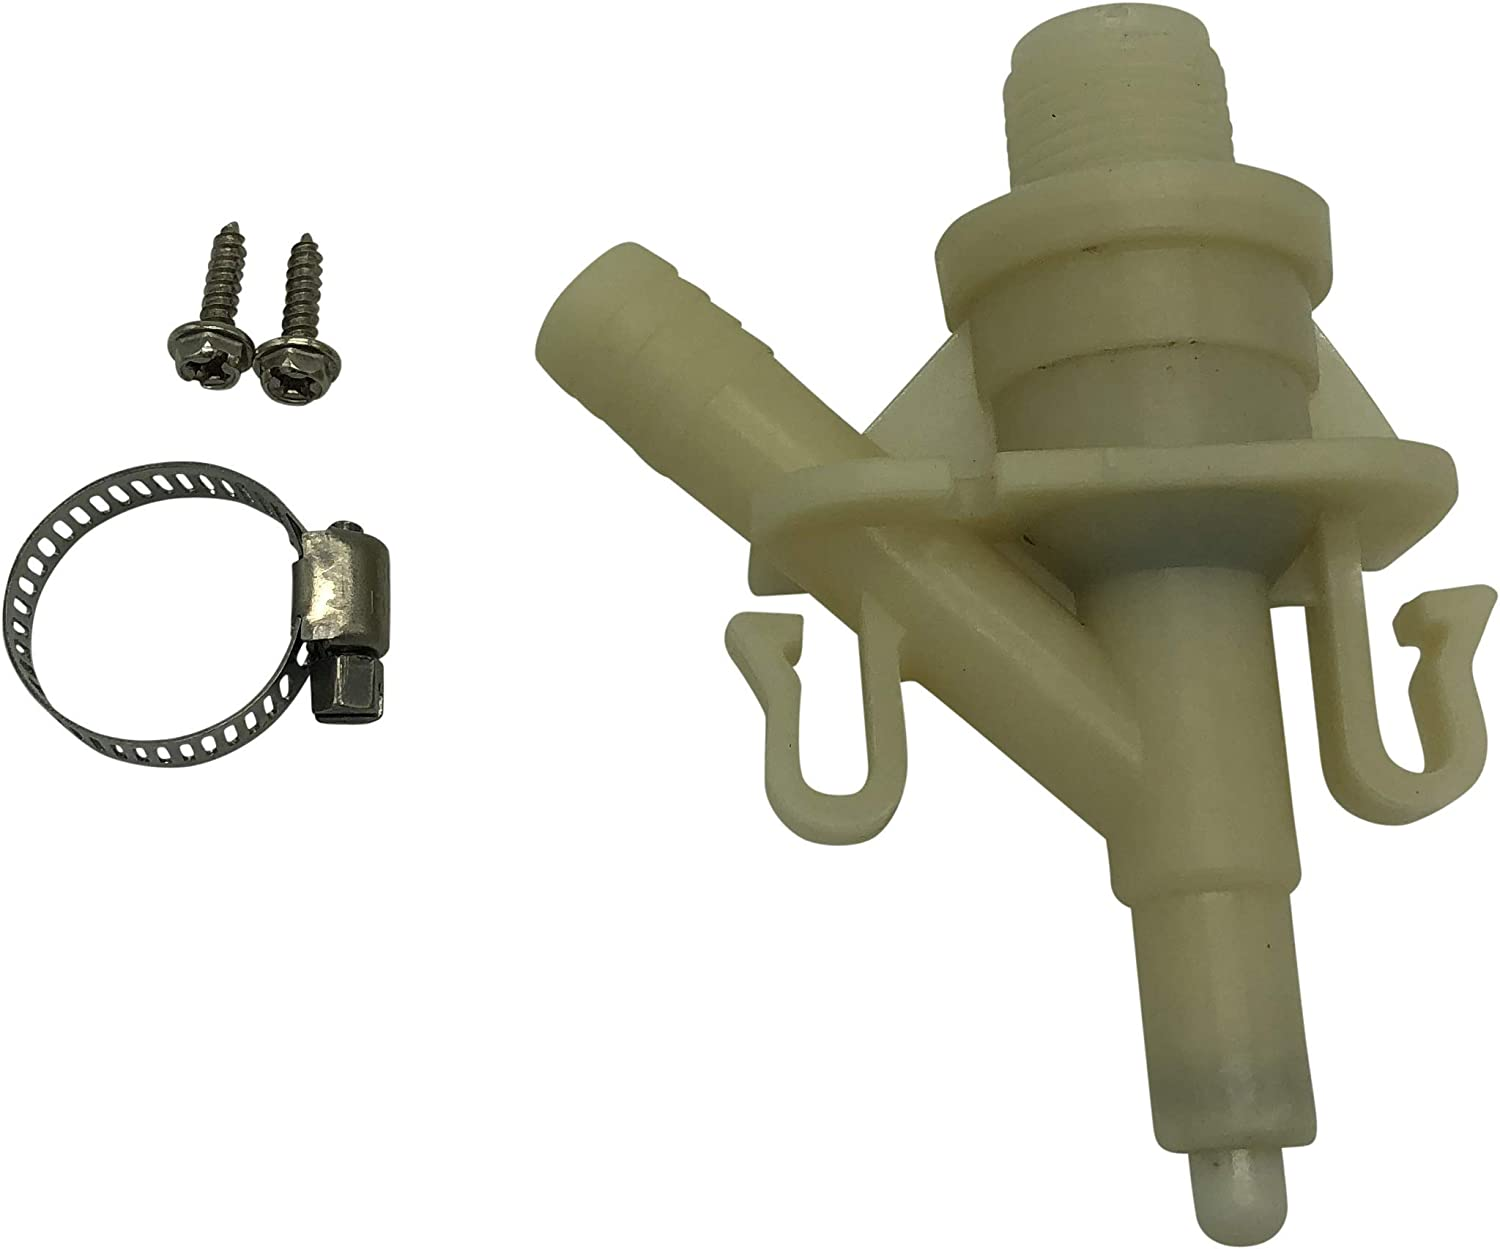 Beech Lane Upgraded Water Valve Kit for Dometic Toilets 300 Upgraded for High Performance in Freezing Conditions and 320 Compare to Dometic Toilet Valve 385311641 Improved Valve Lifespan 310